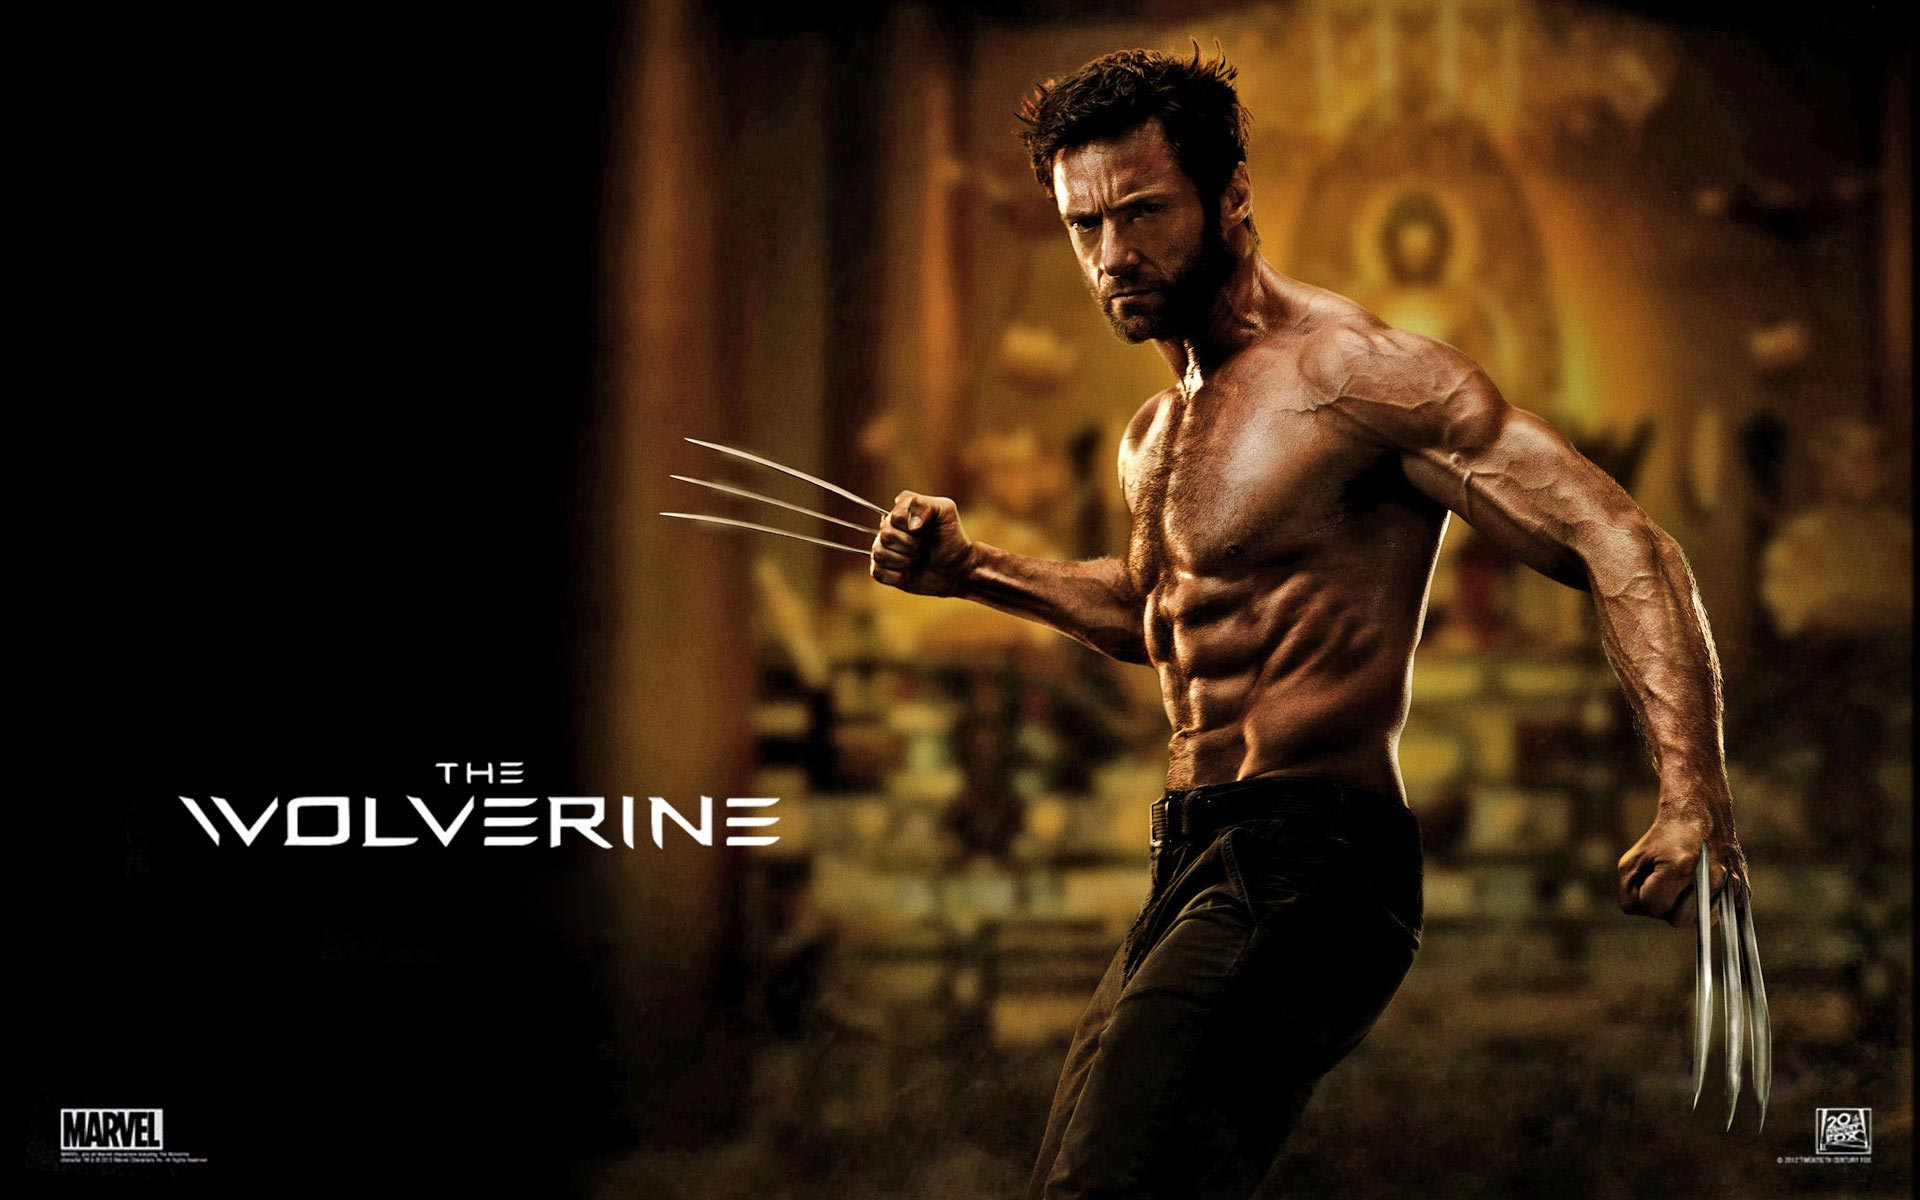 The Wolverine 2013: Fox Sets Dates To The Fantastic Four 2 And The Sequel To